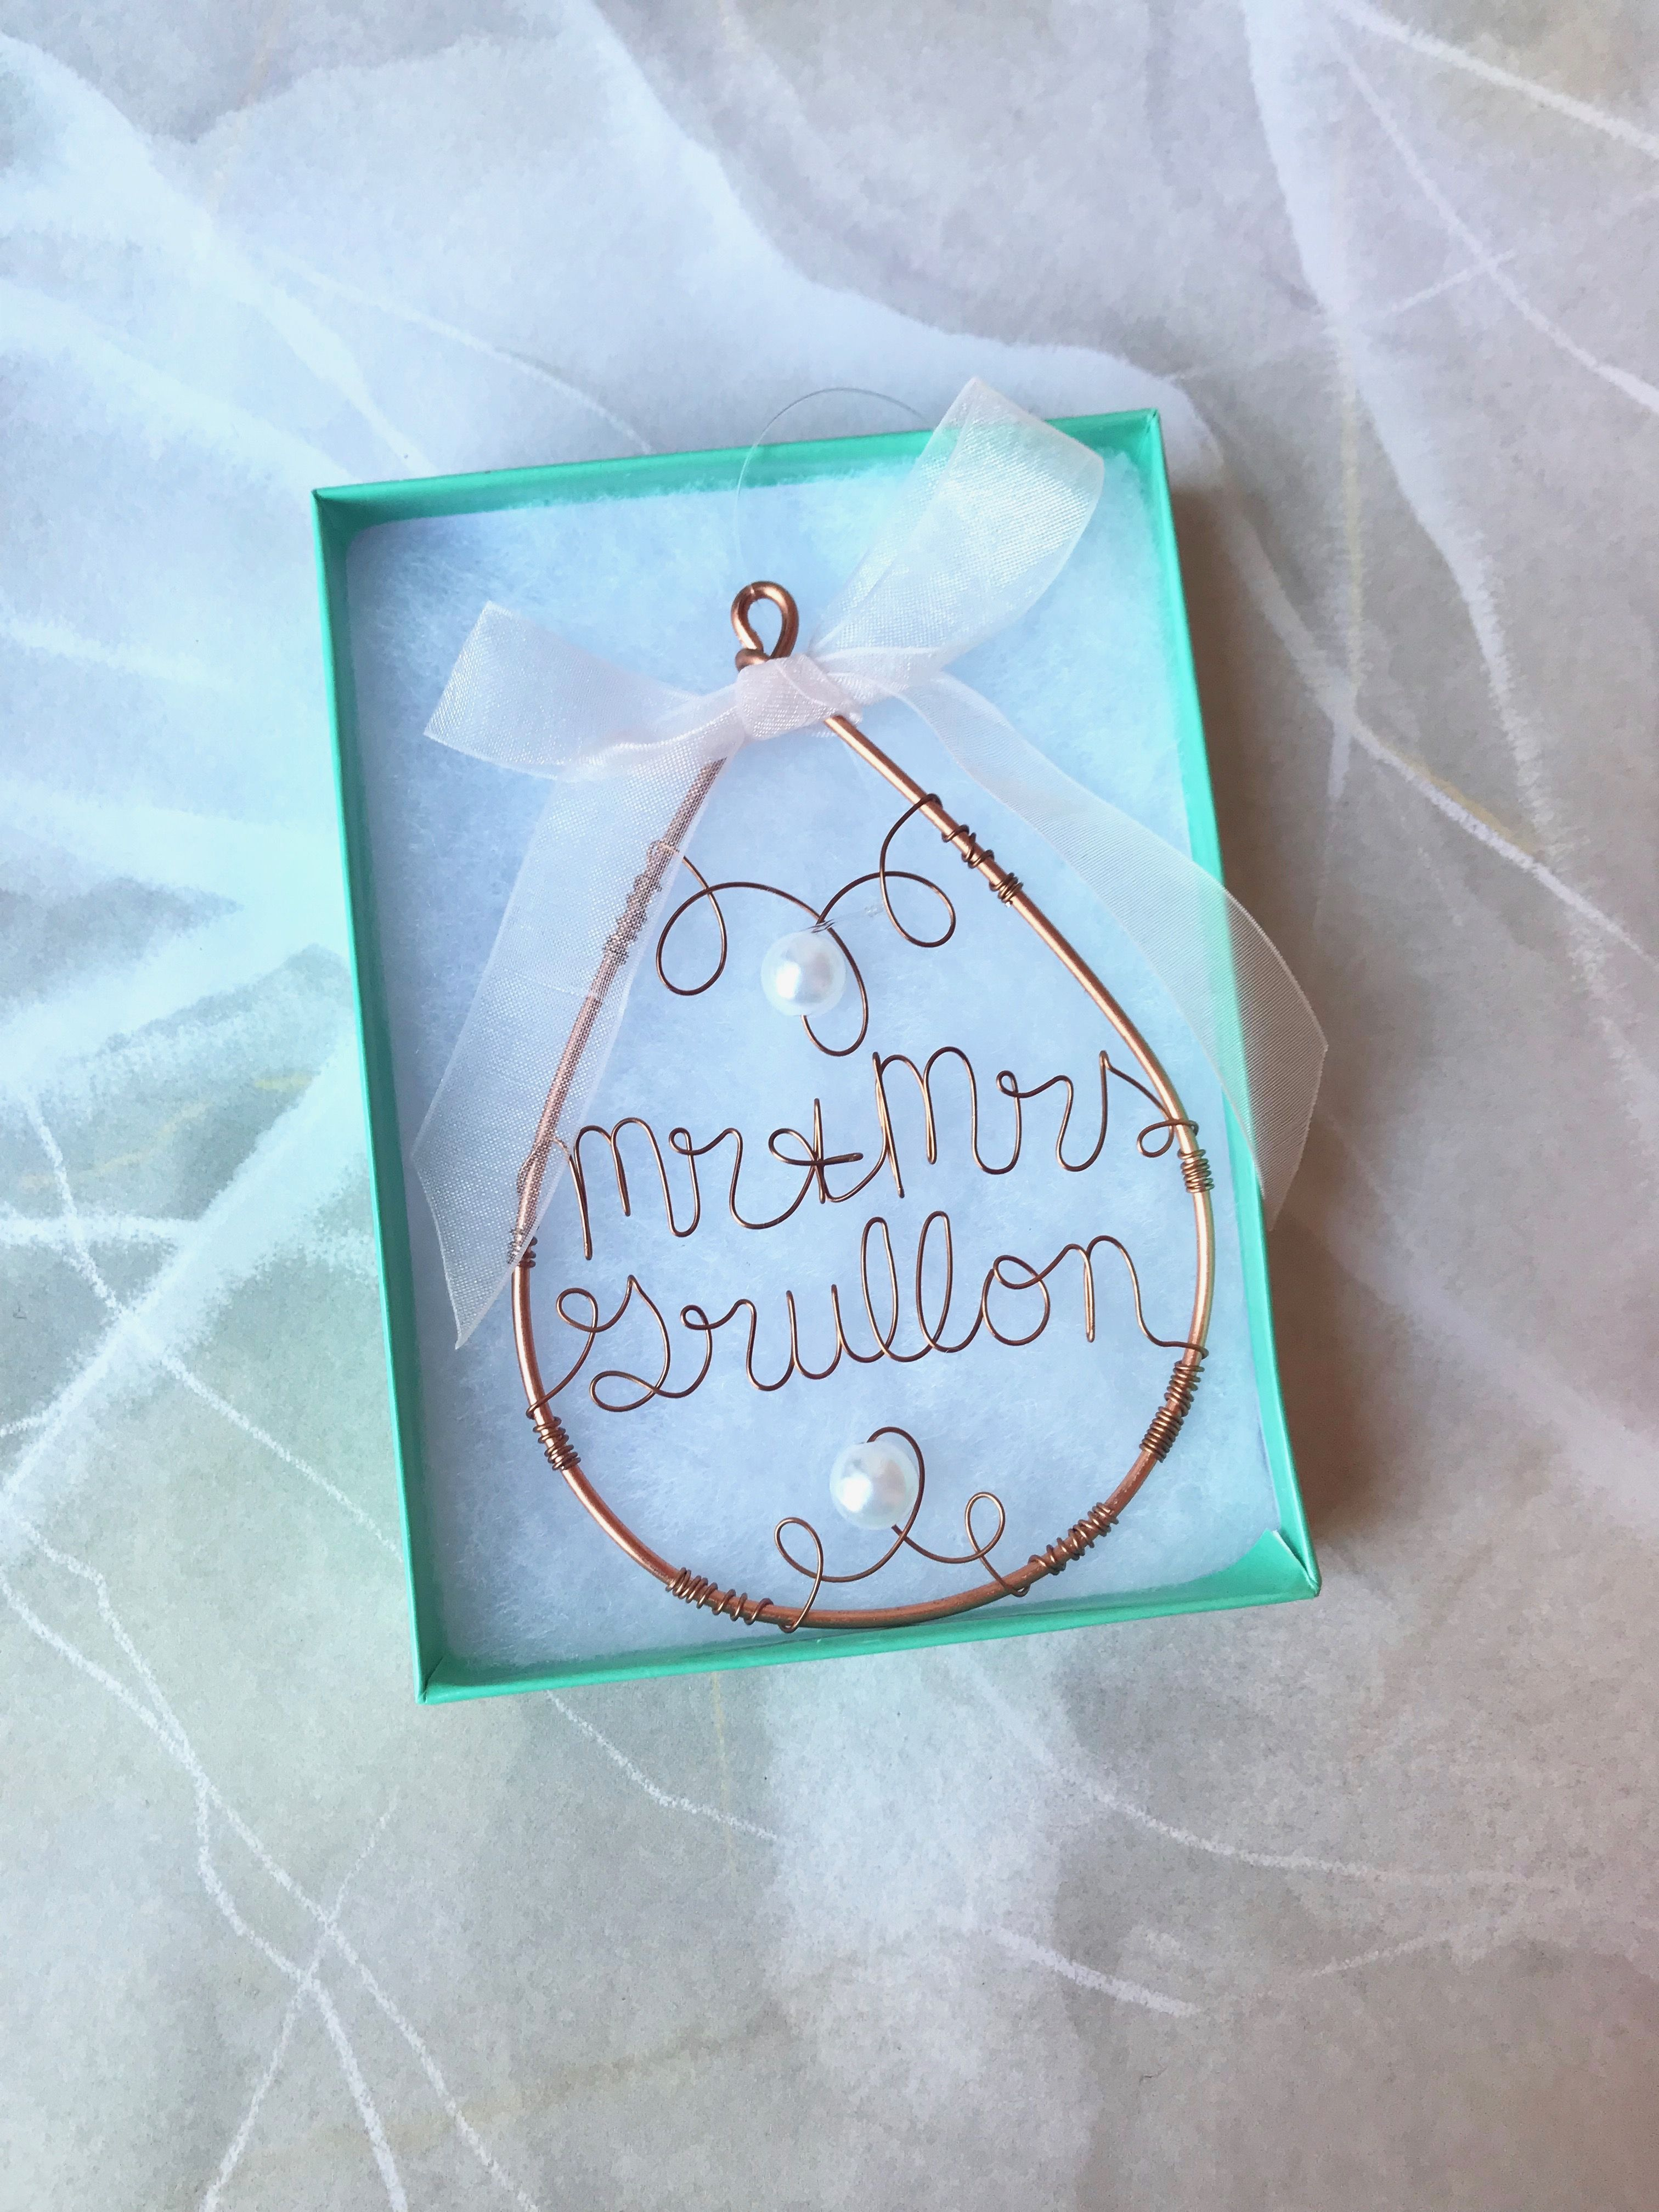 Mr and mrs ornament wedding ornament our first christmas as mr and